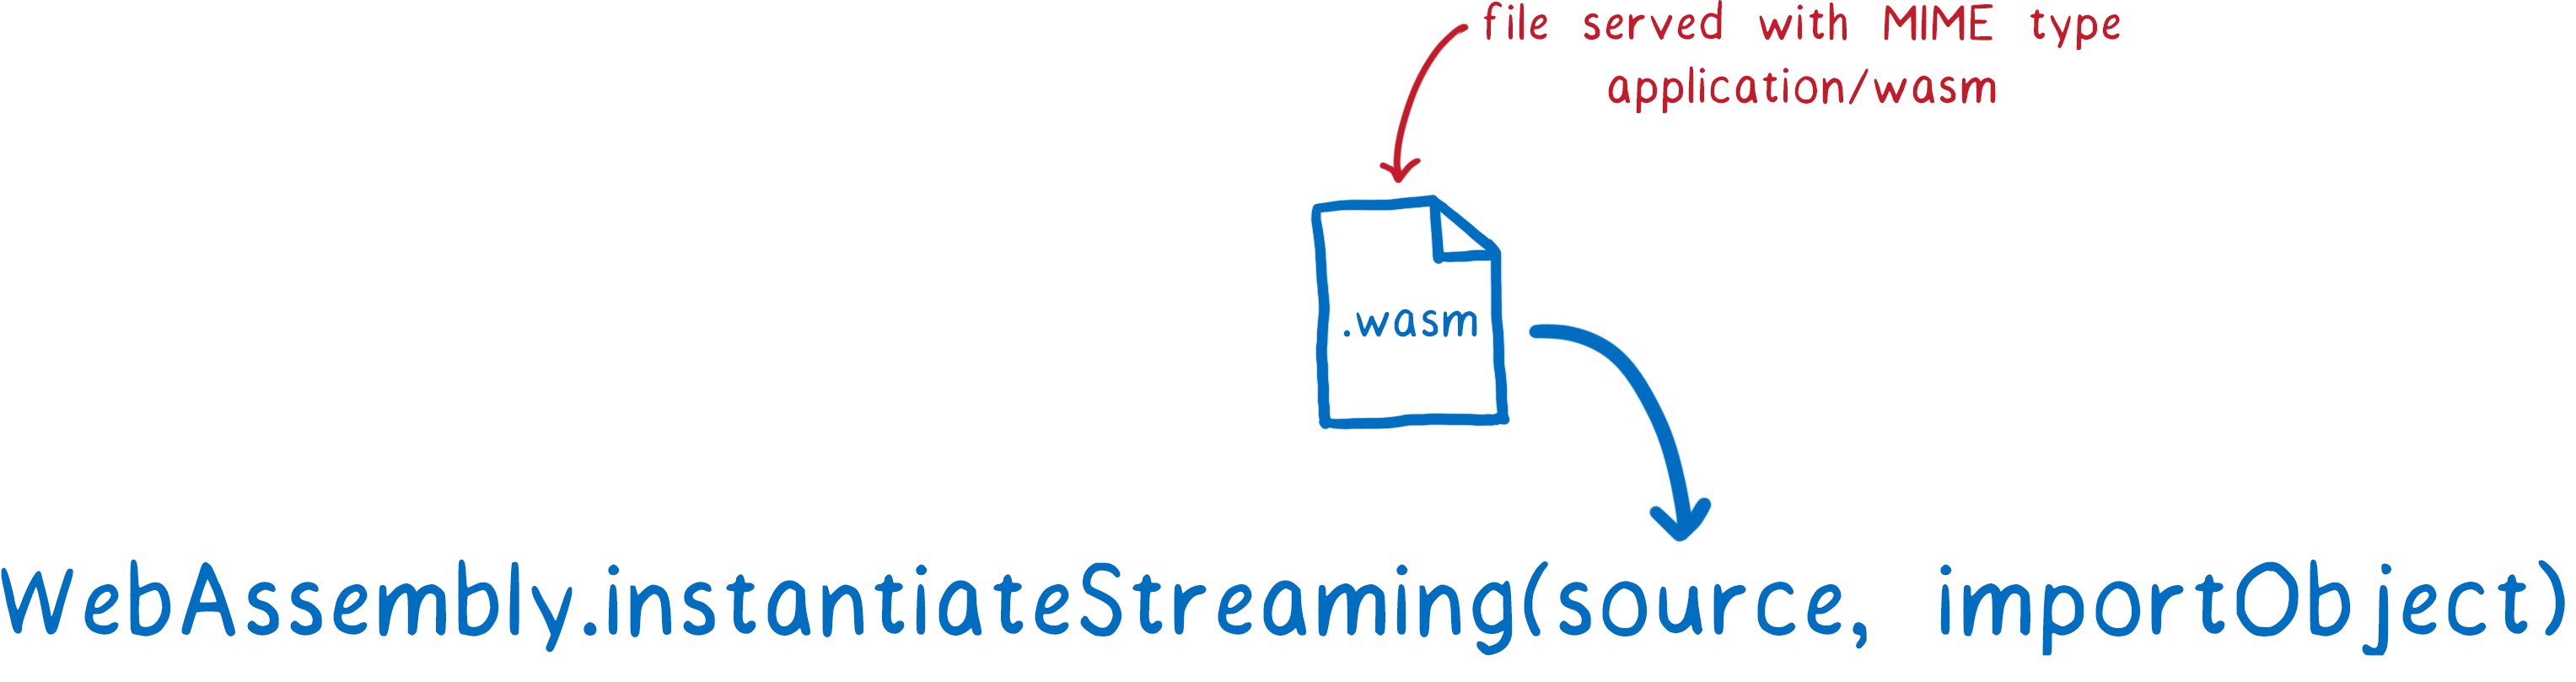 Making WebAssembly even faster: Firefox's new streaming and